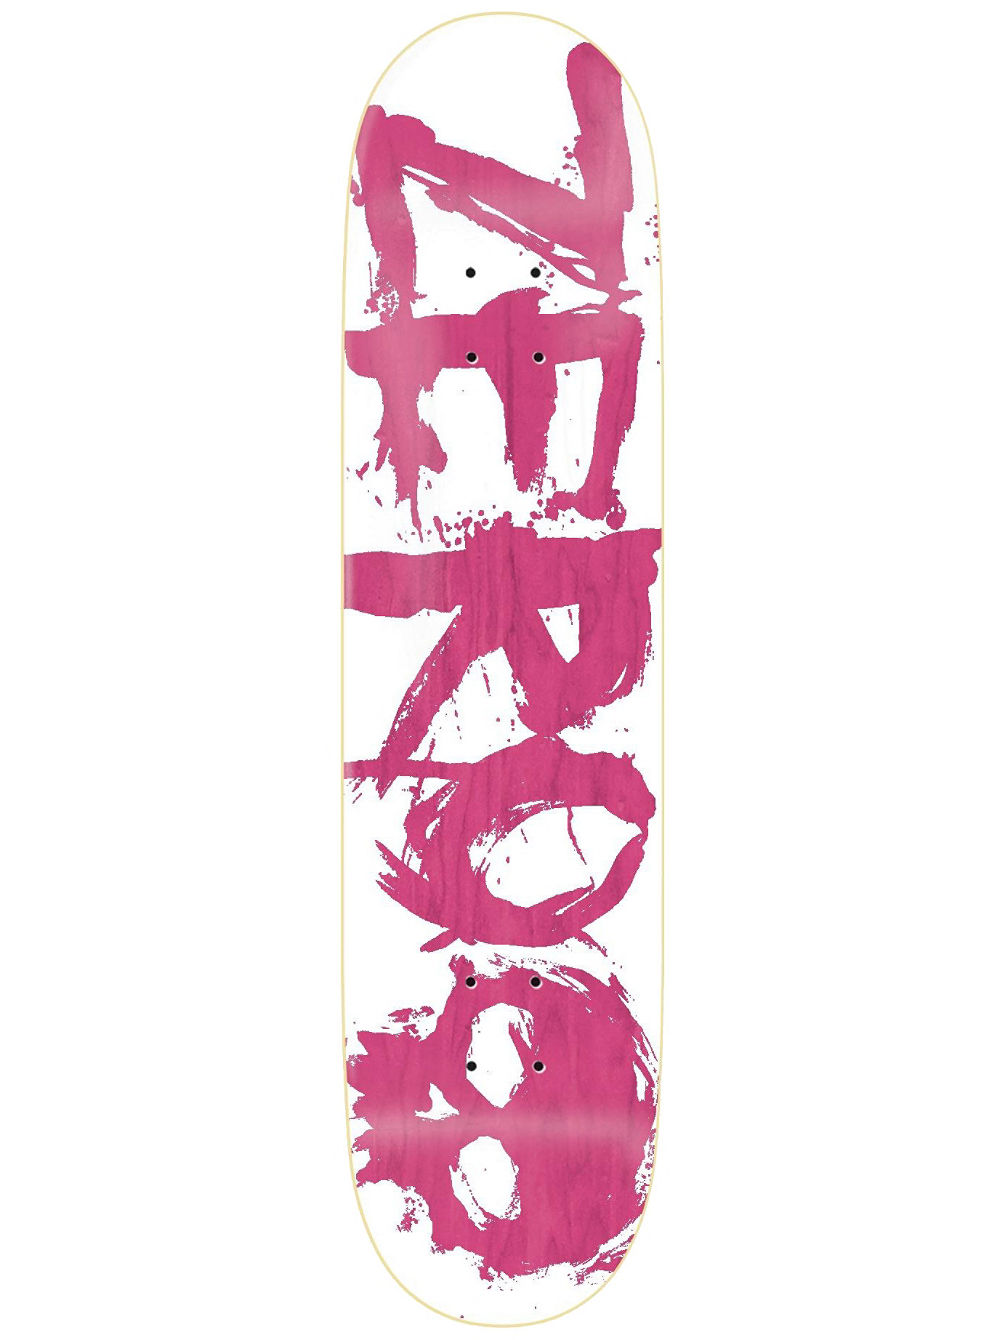 "Blood Mag. Pr. Po. 8"" Skate Deck"